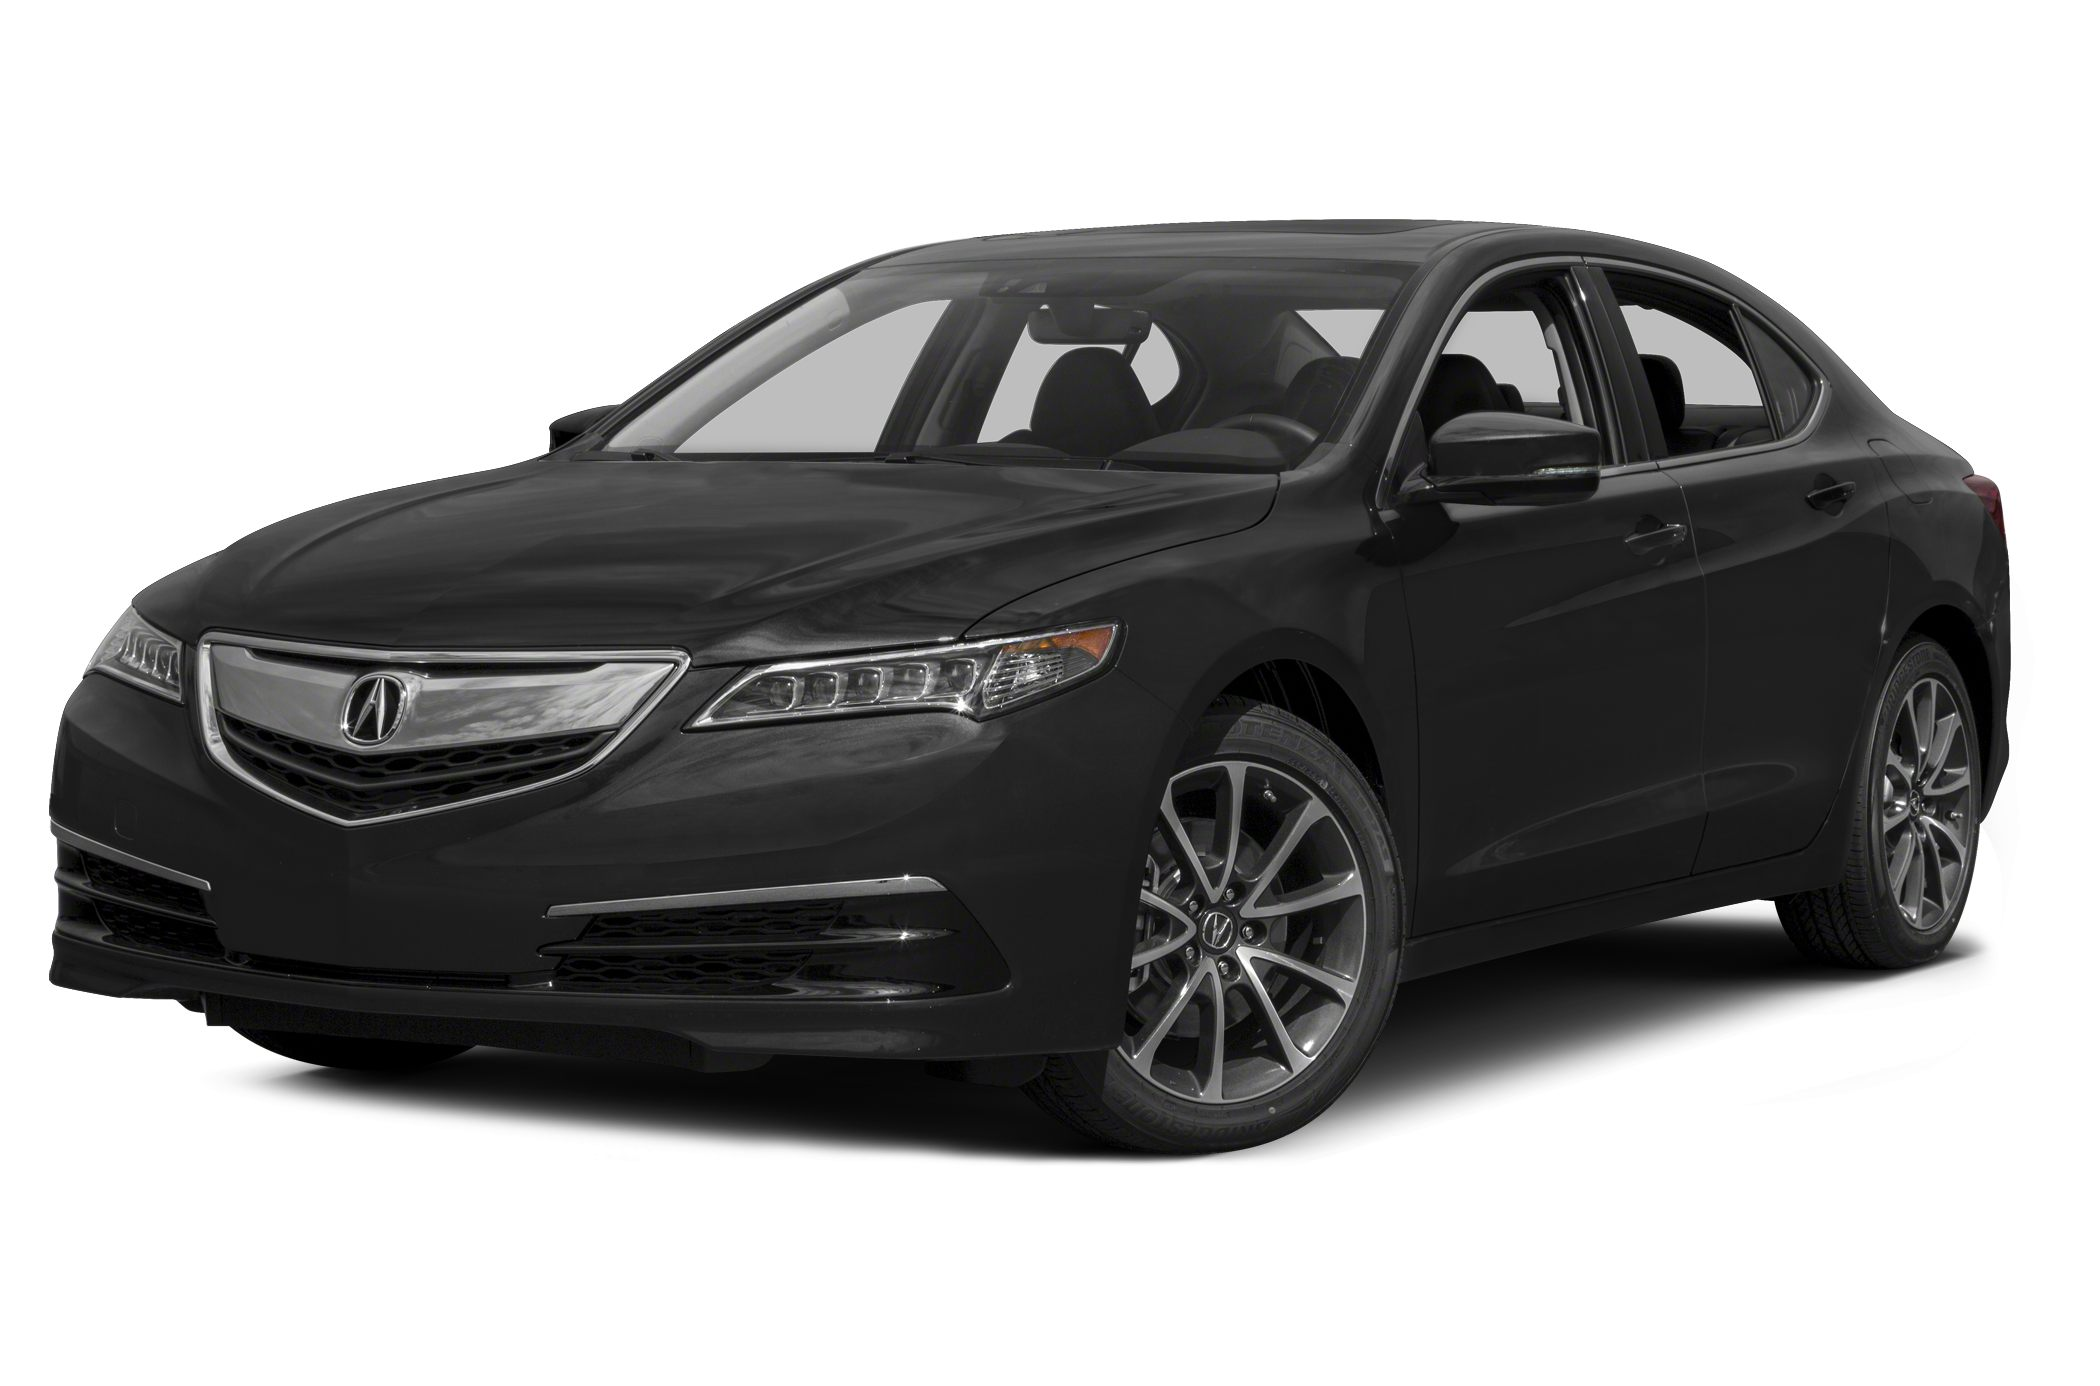 2015 Acura TLX V6 Tech Clean Carfax - One Owner - Technology Package - Navigation System - Backup